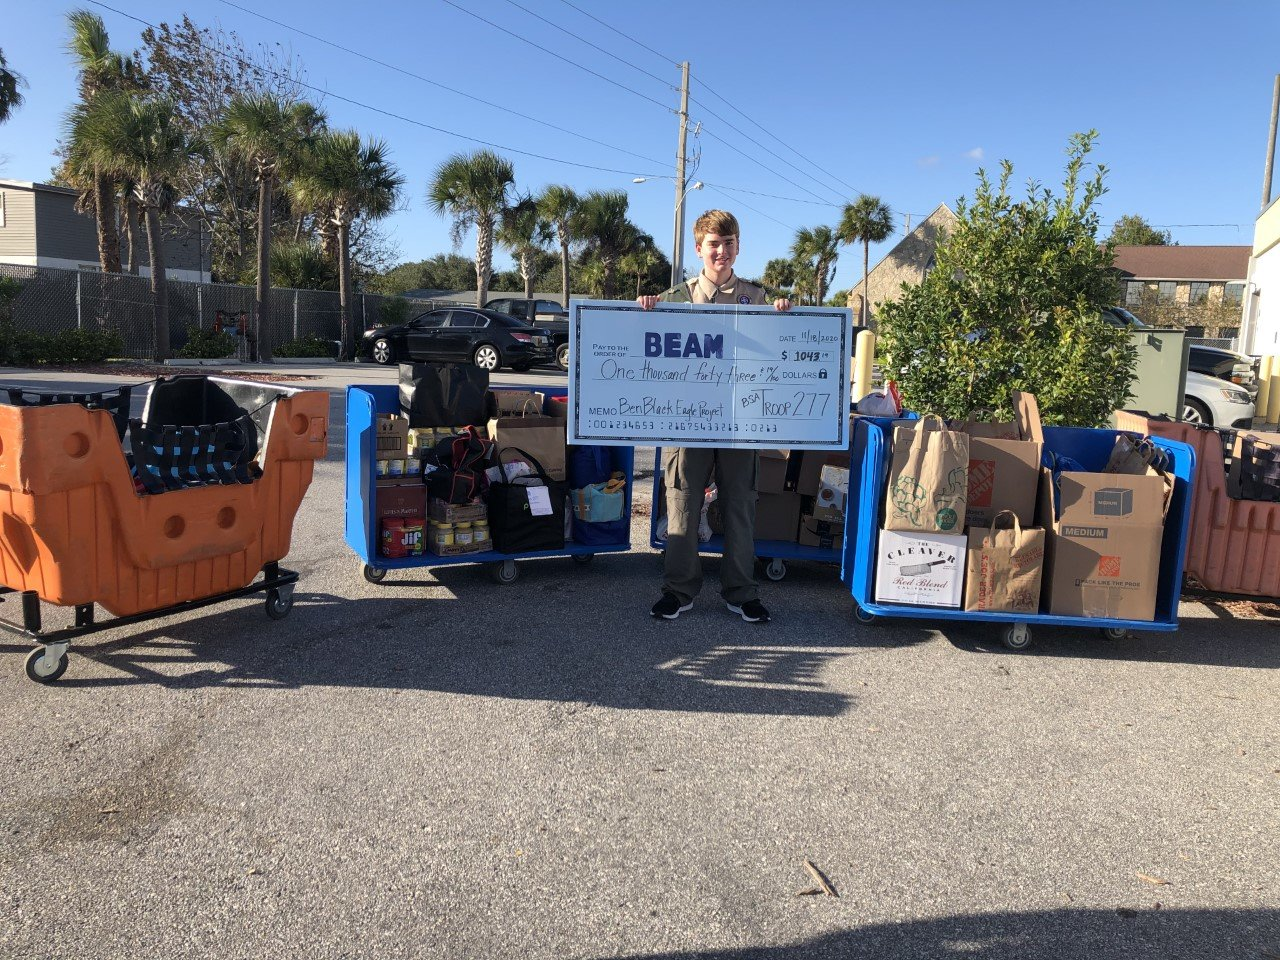 After refurbishing 17 food bank carts and collecting 920 pounds of food and toiletry items, Eagle Scout Ben Black donated more than $1,000 to BEAM.